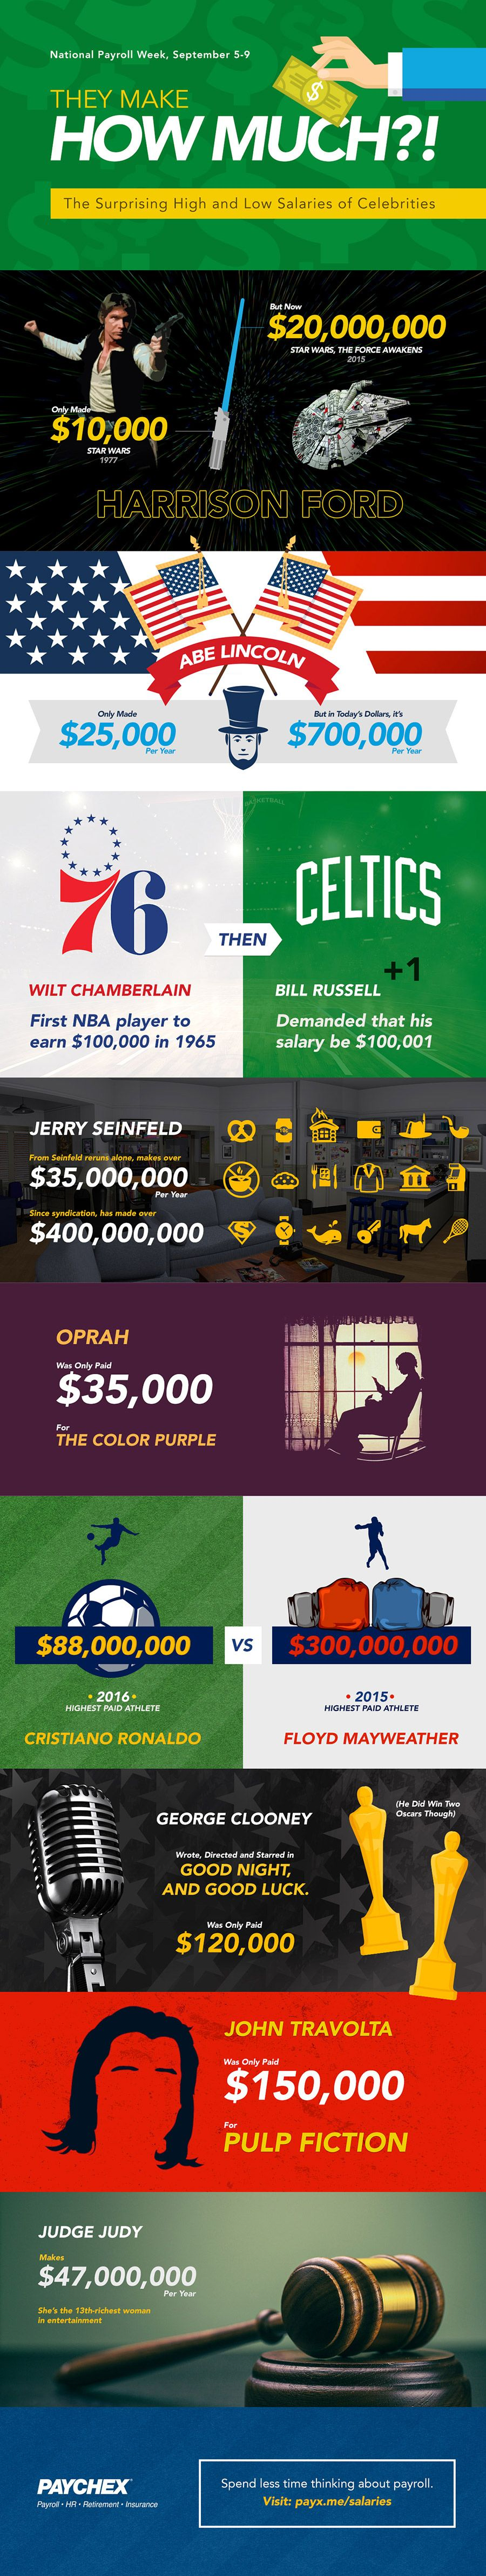 Infograph describing the amounts of money some famous athletes and actors have received for various reasons and roles.